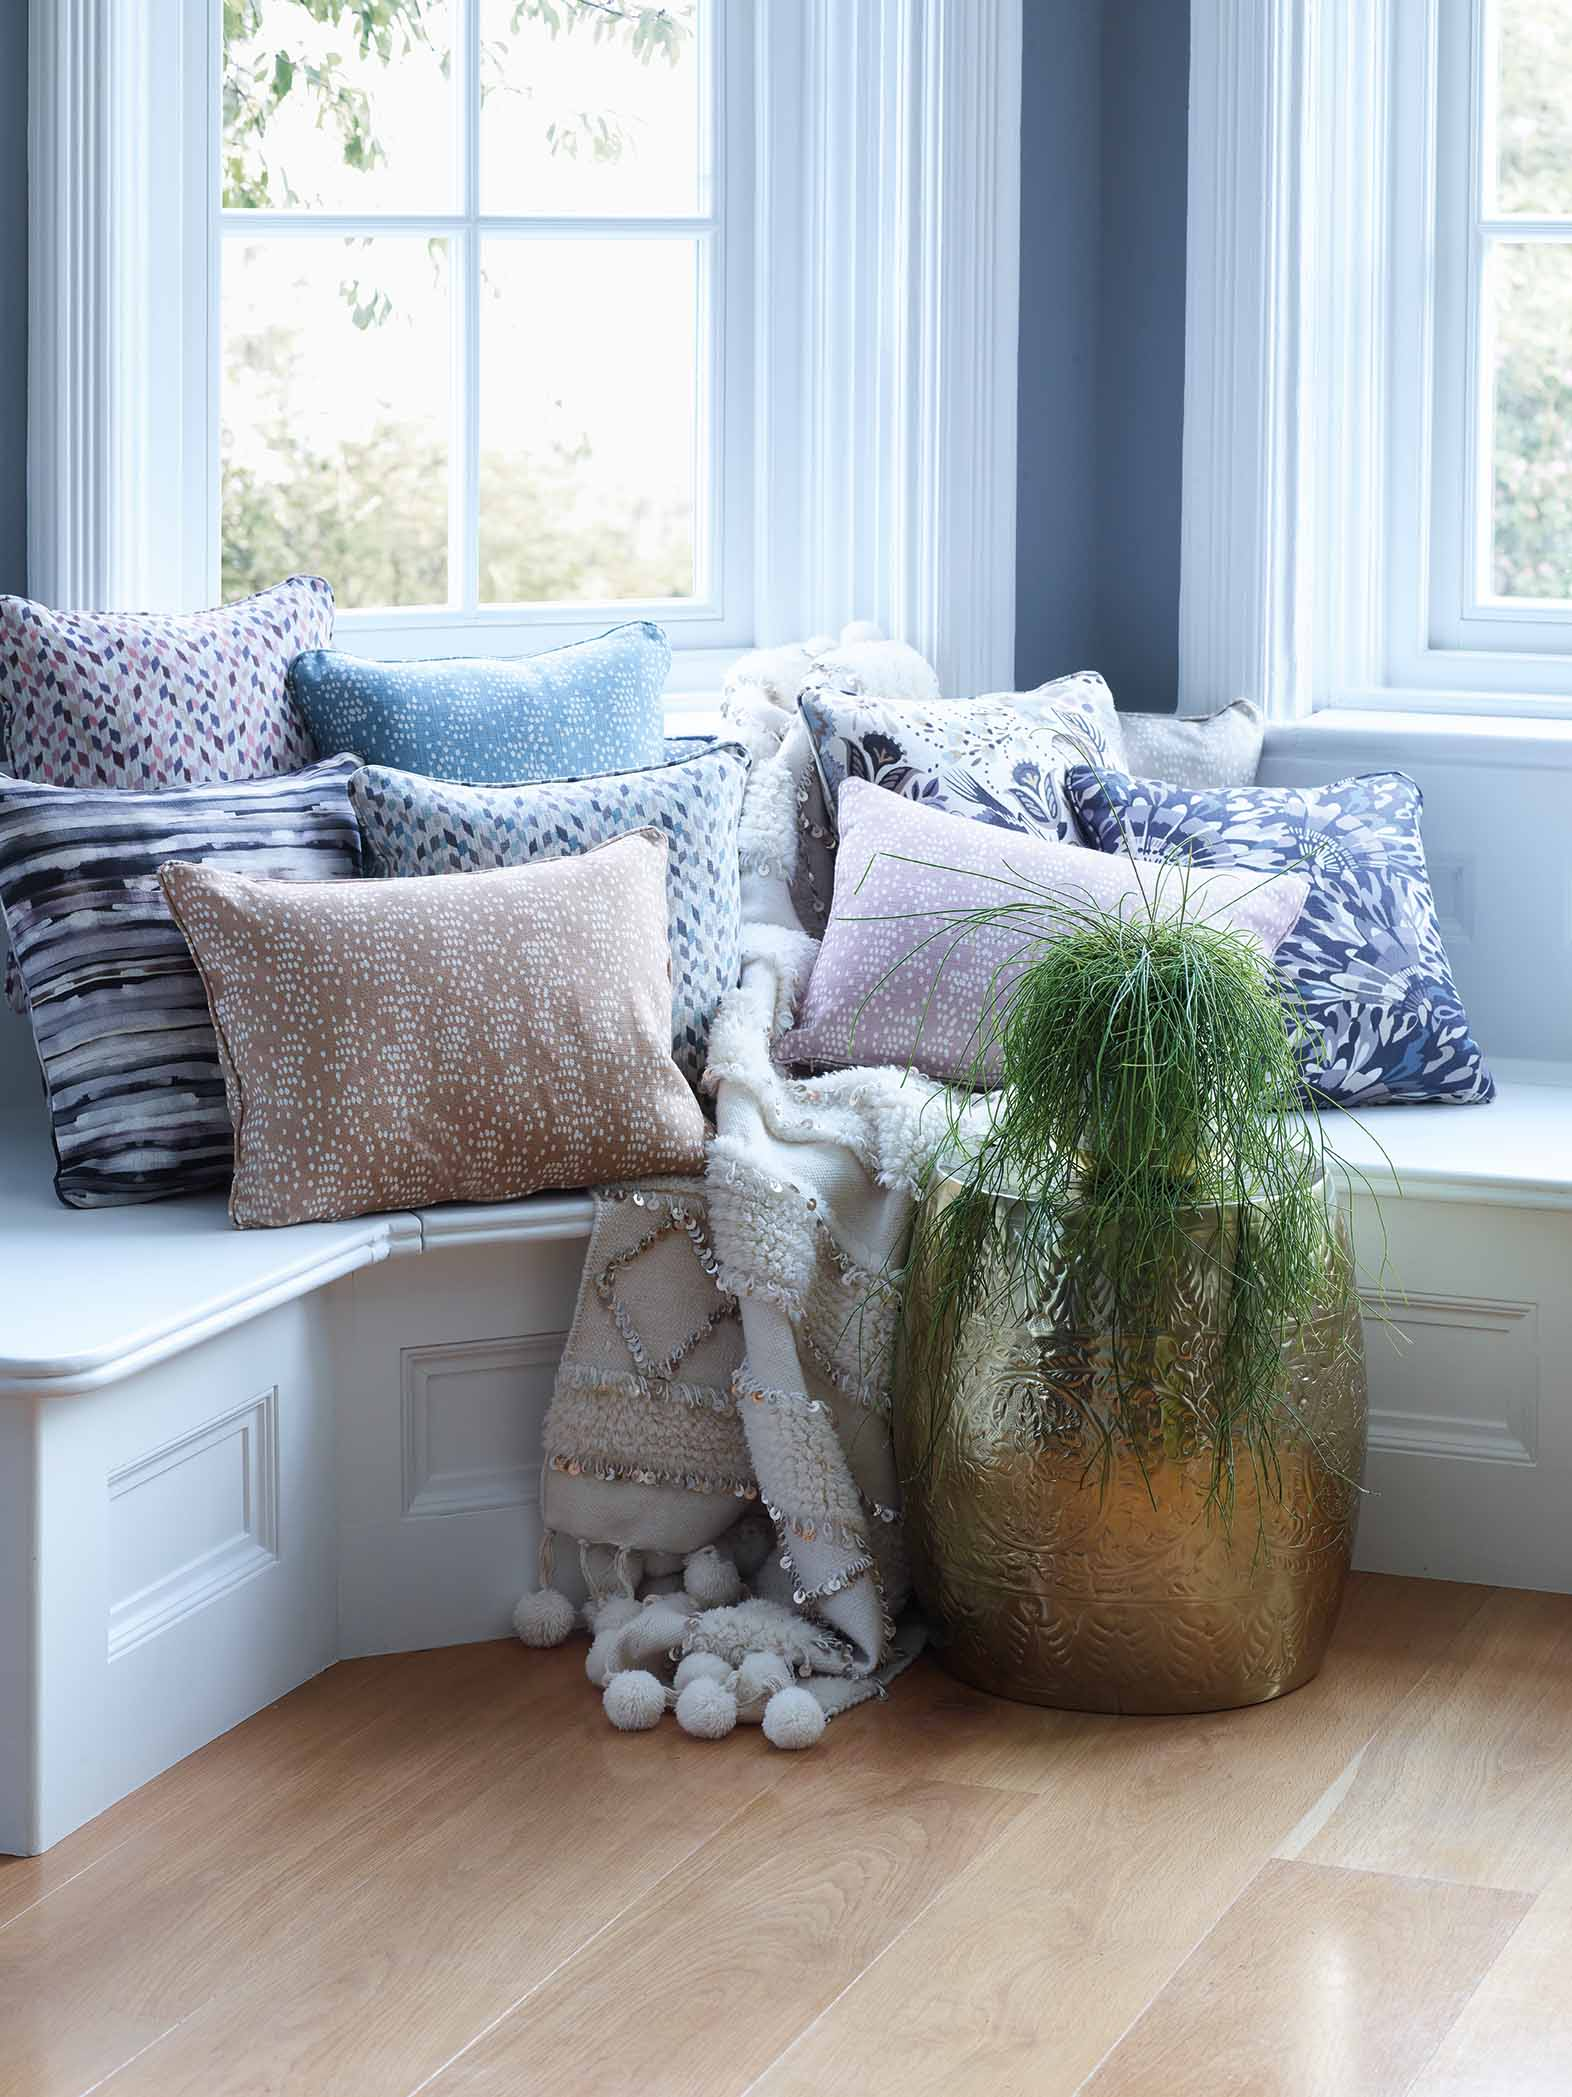 The scatter cushion collection. Image credit: Multiyork.